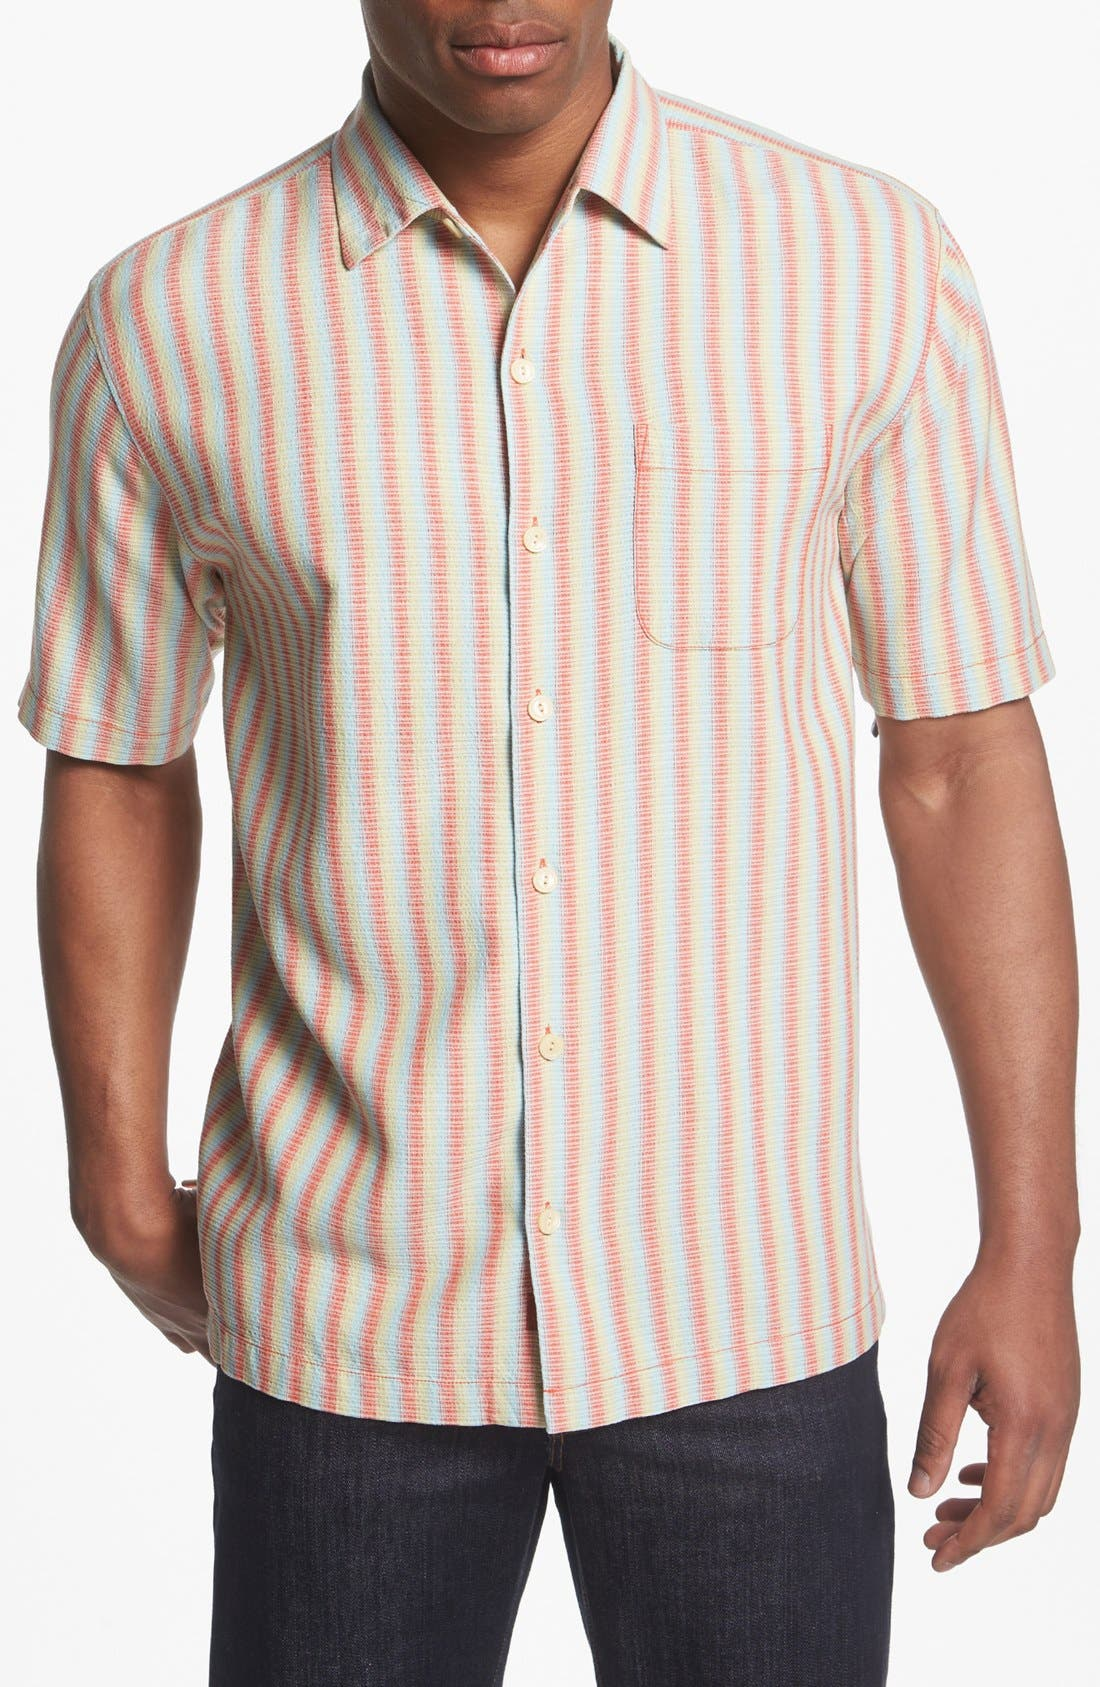 Main Image - Tommy Bahama 'Dancing with the Stripes' Silk Campshirt